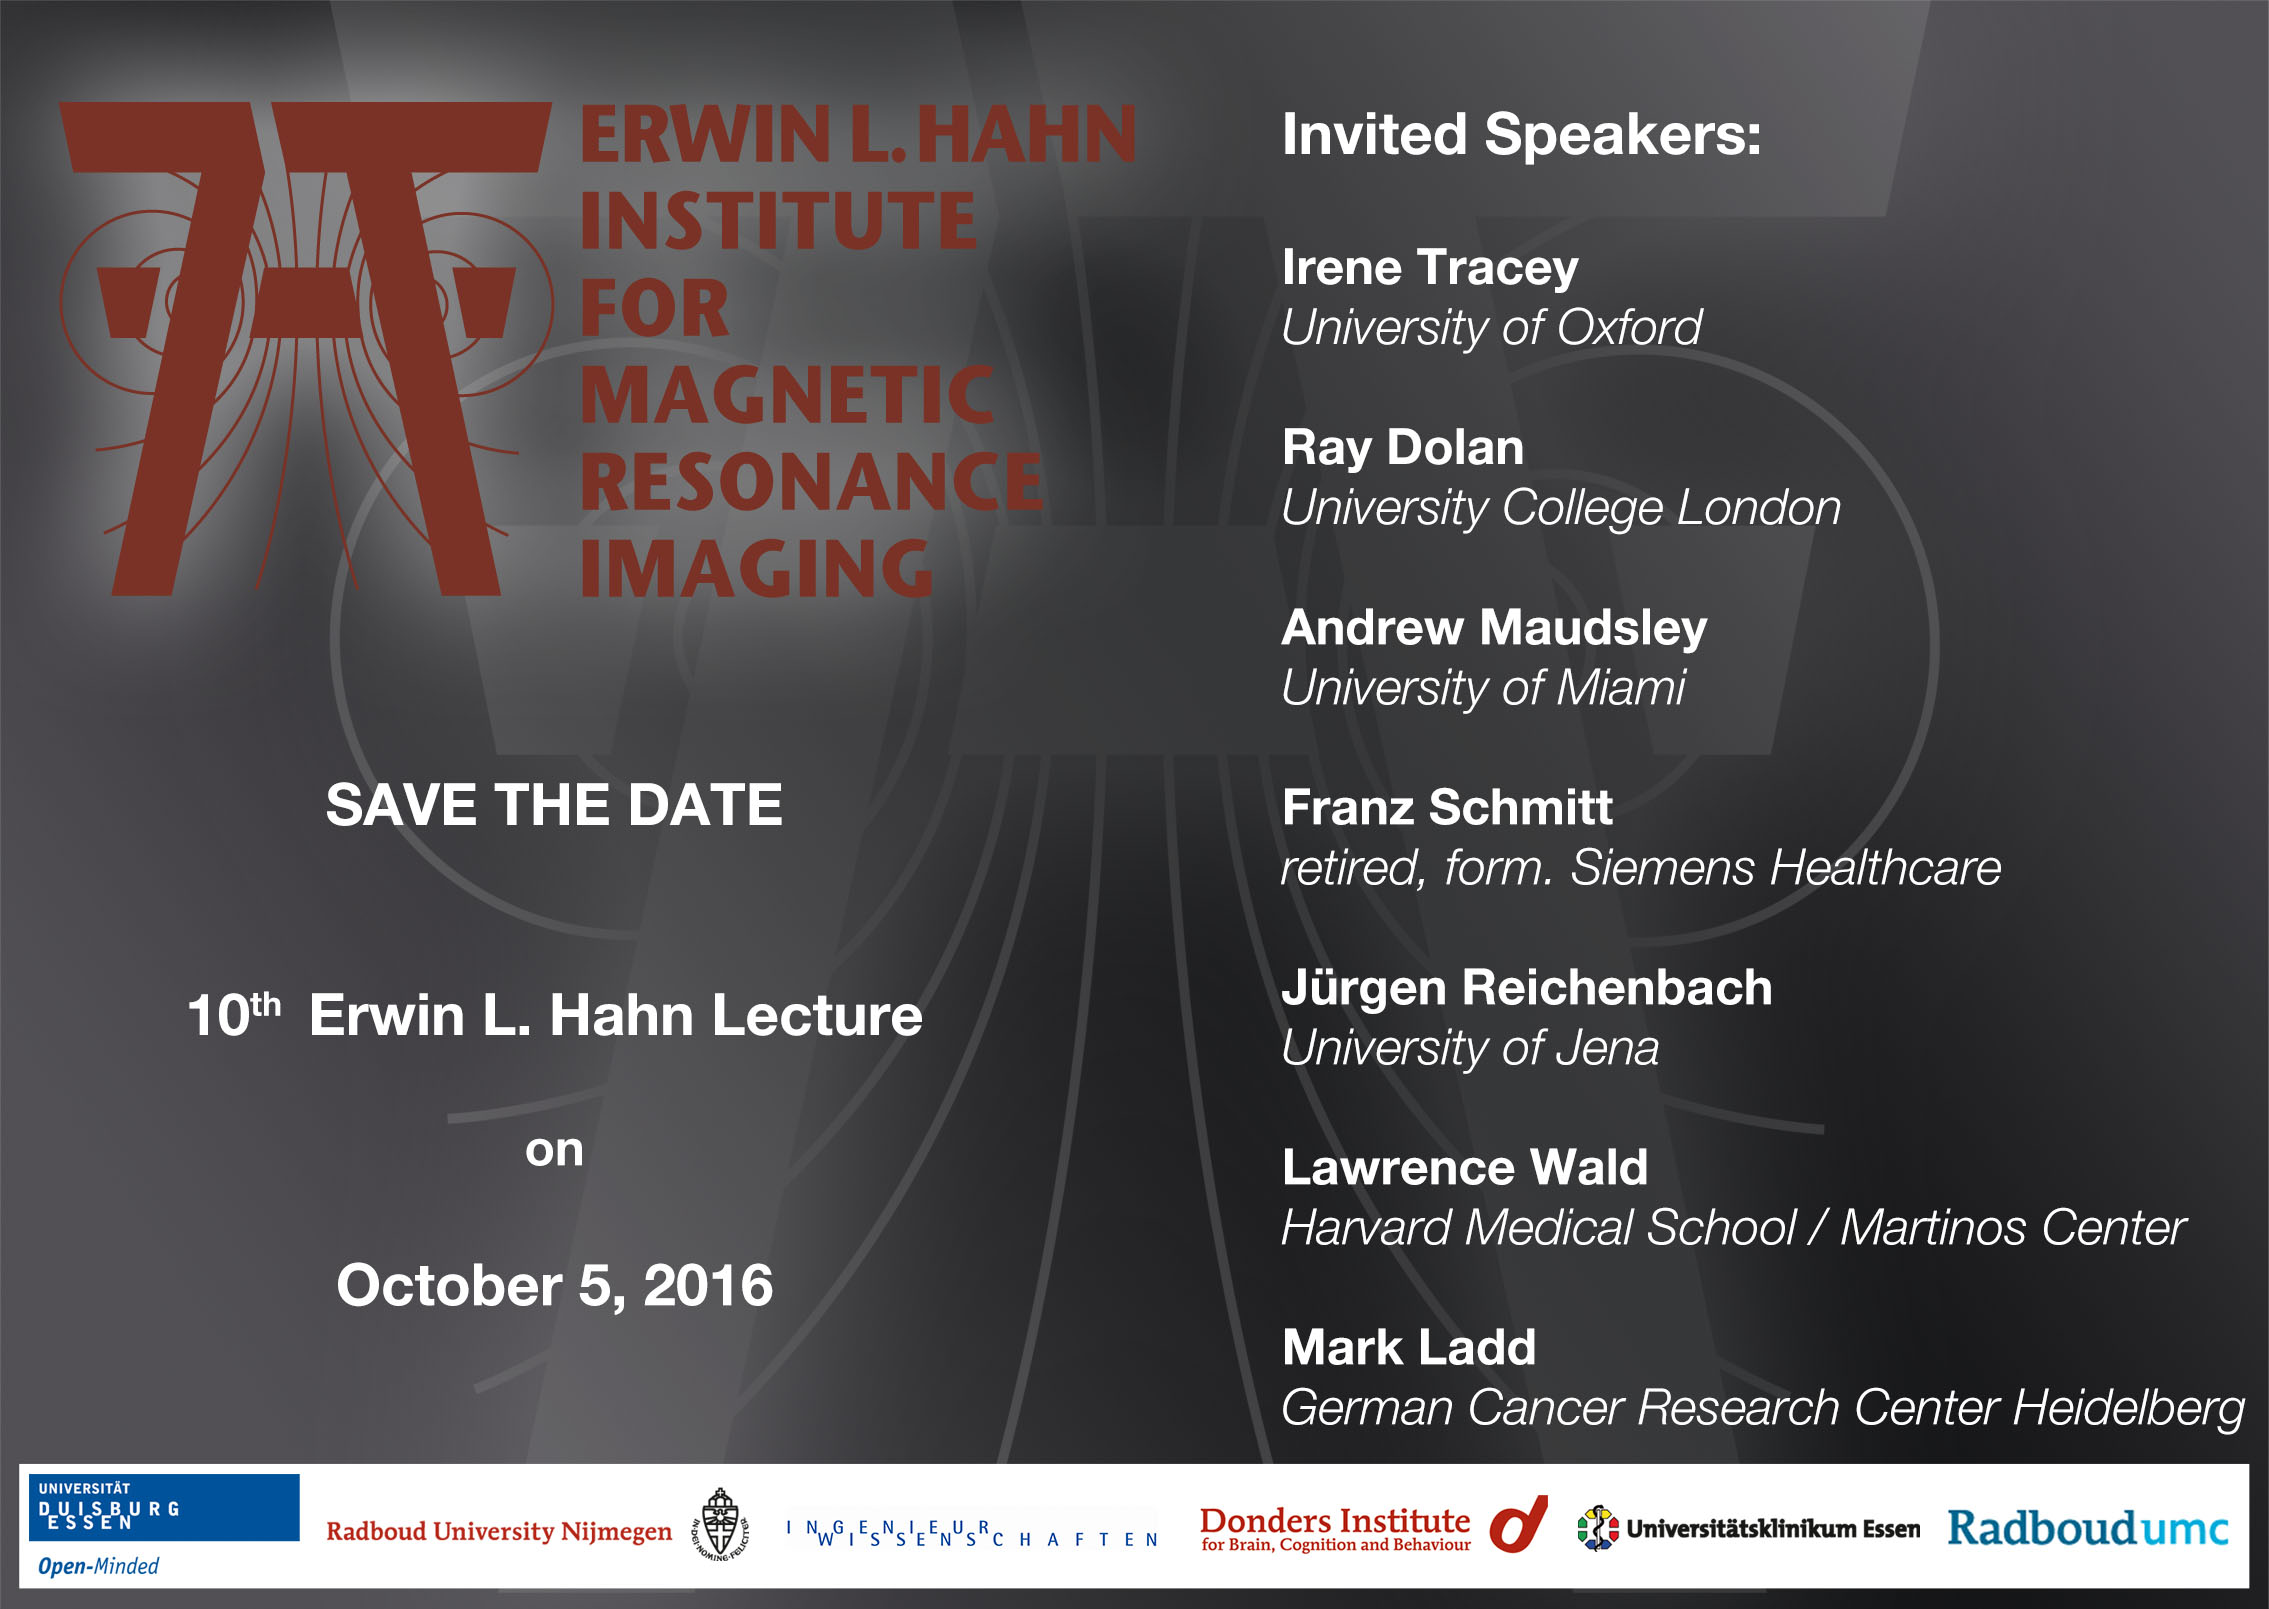 thumb 10th Erwin L. Hahn Lecture